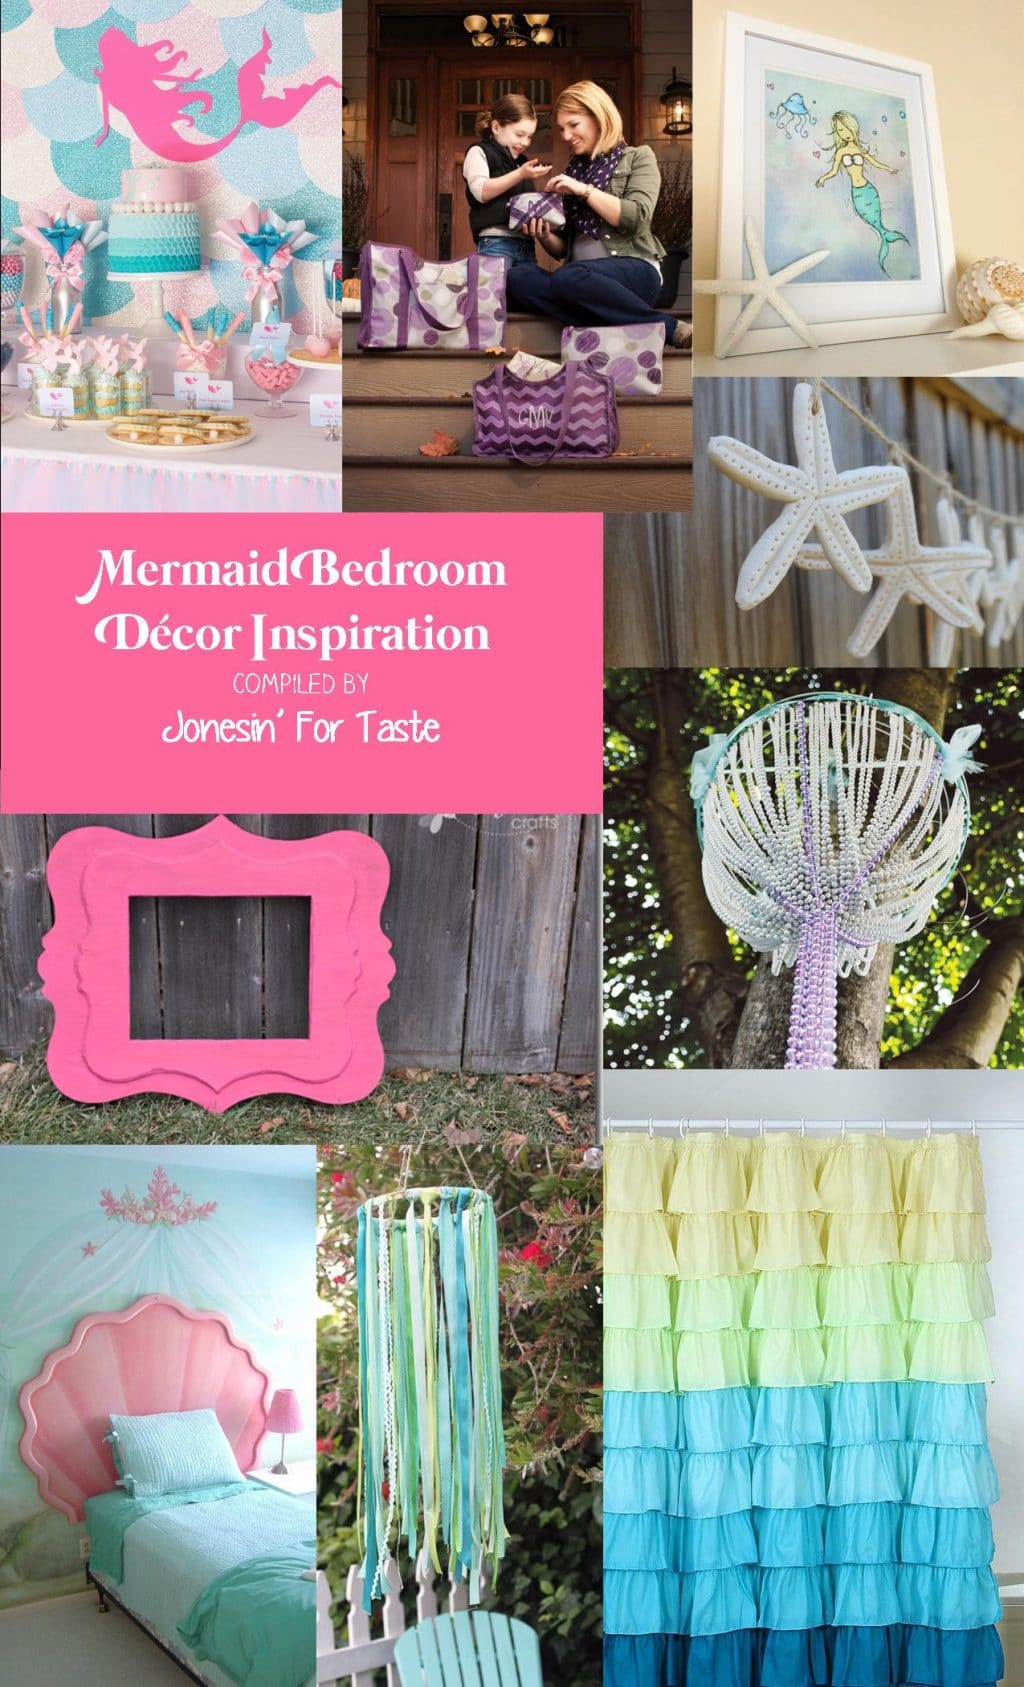 Mermaid Bedroom Inspiration